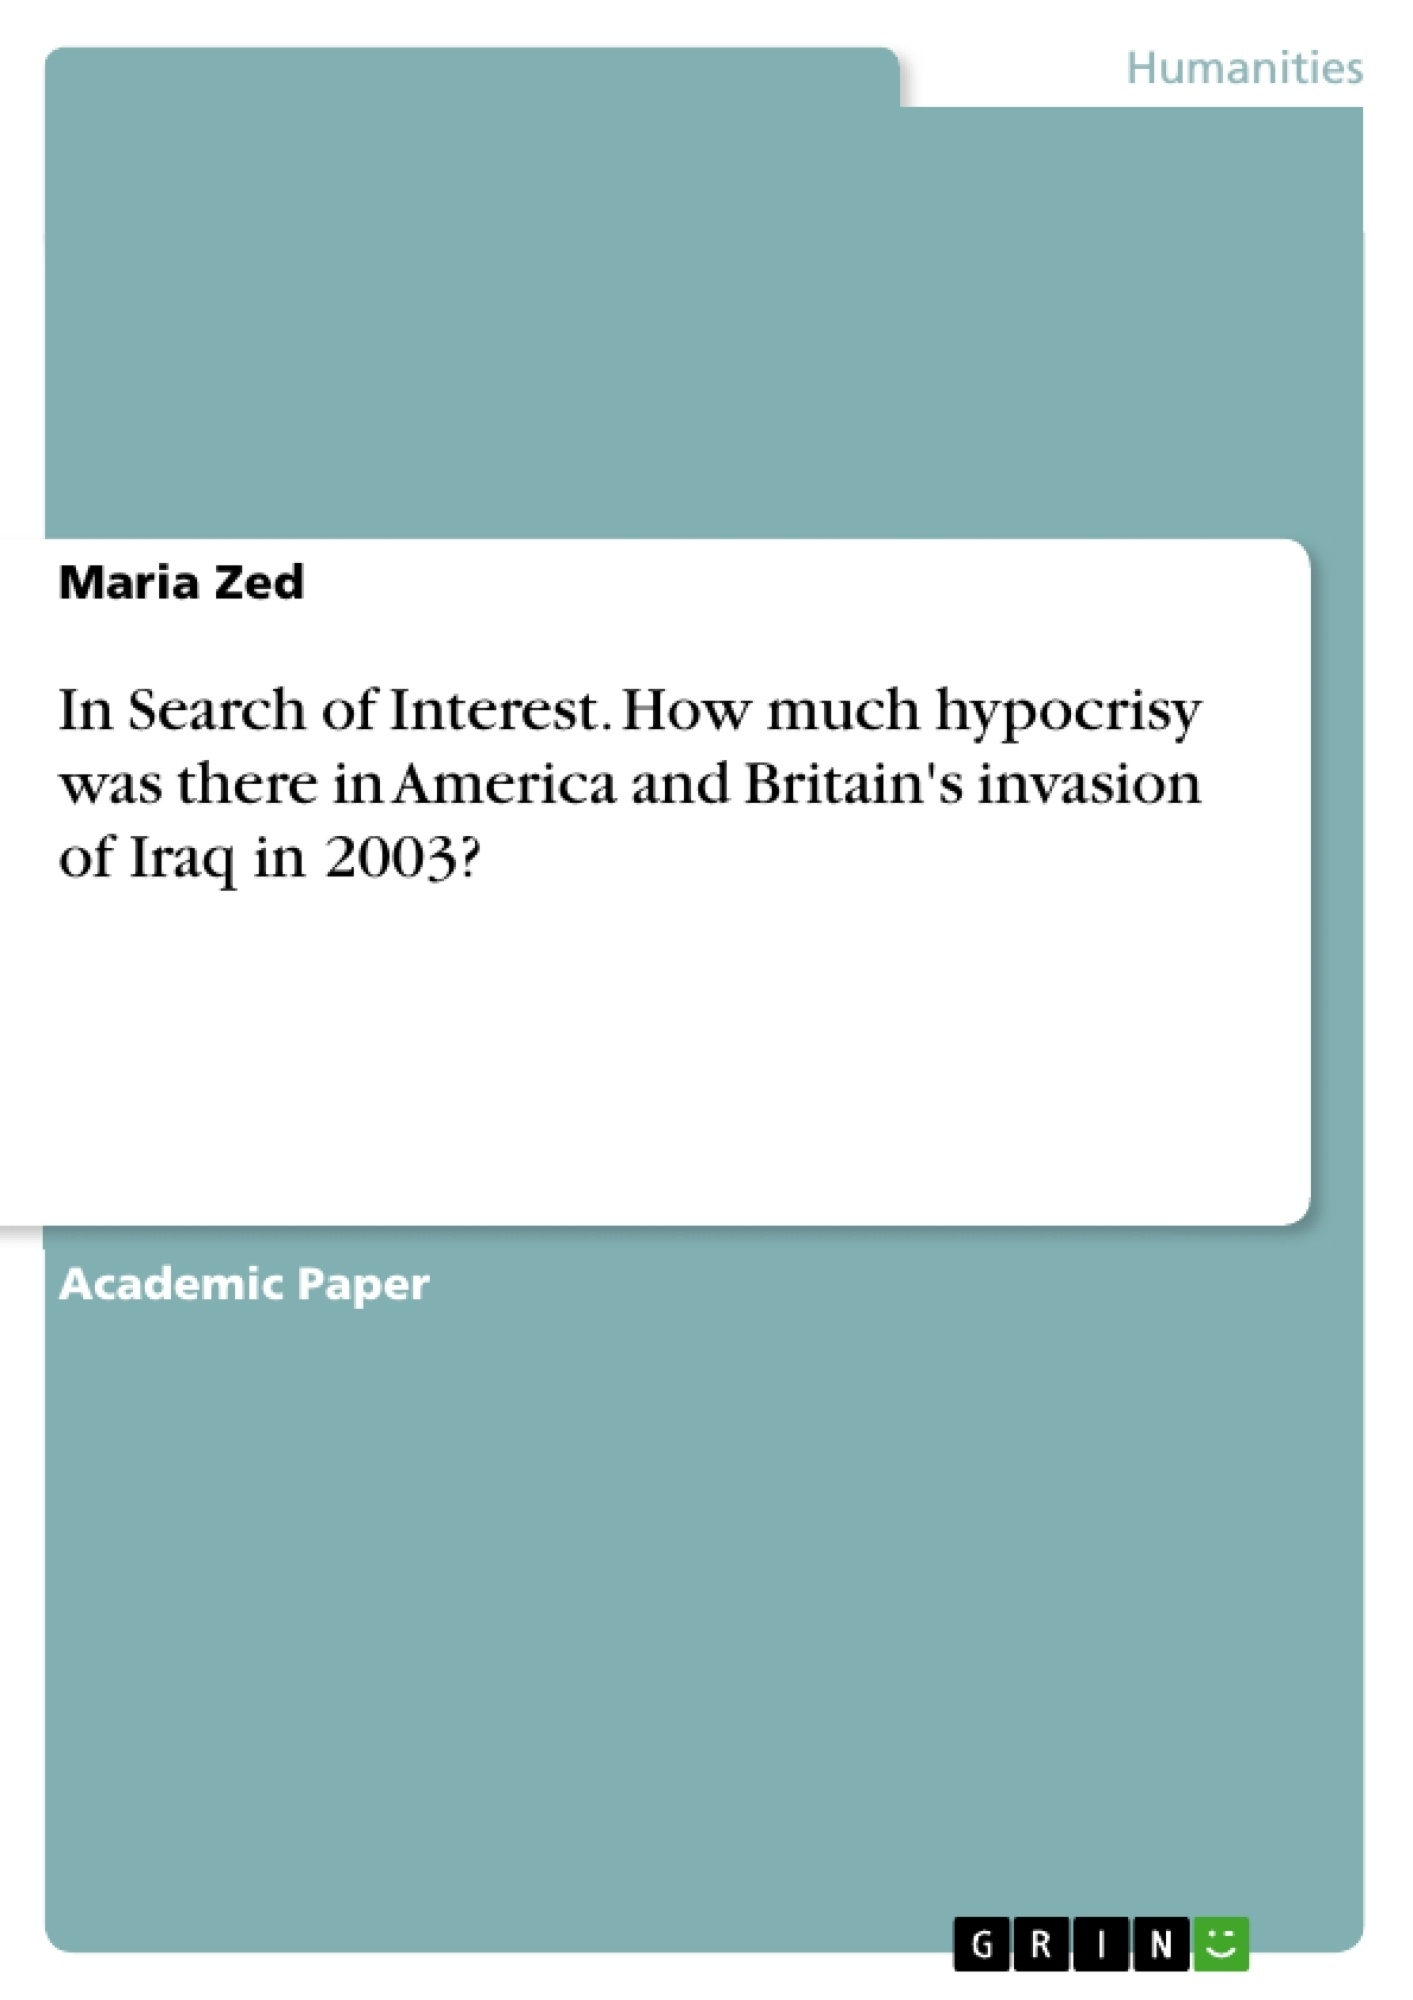 Title: In Search of Interest. How much hypocrisy was there in America and Britain's invasion of Iraq in 2003?